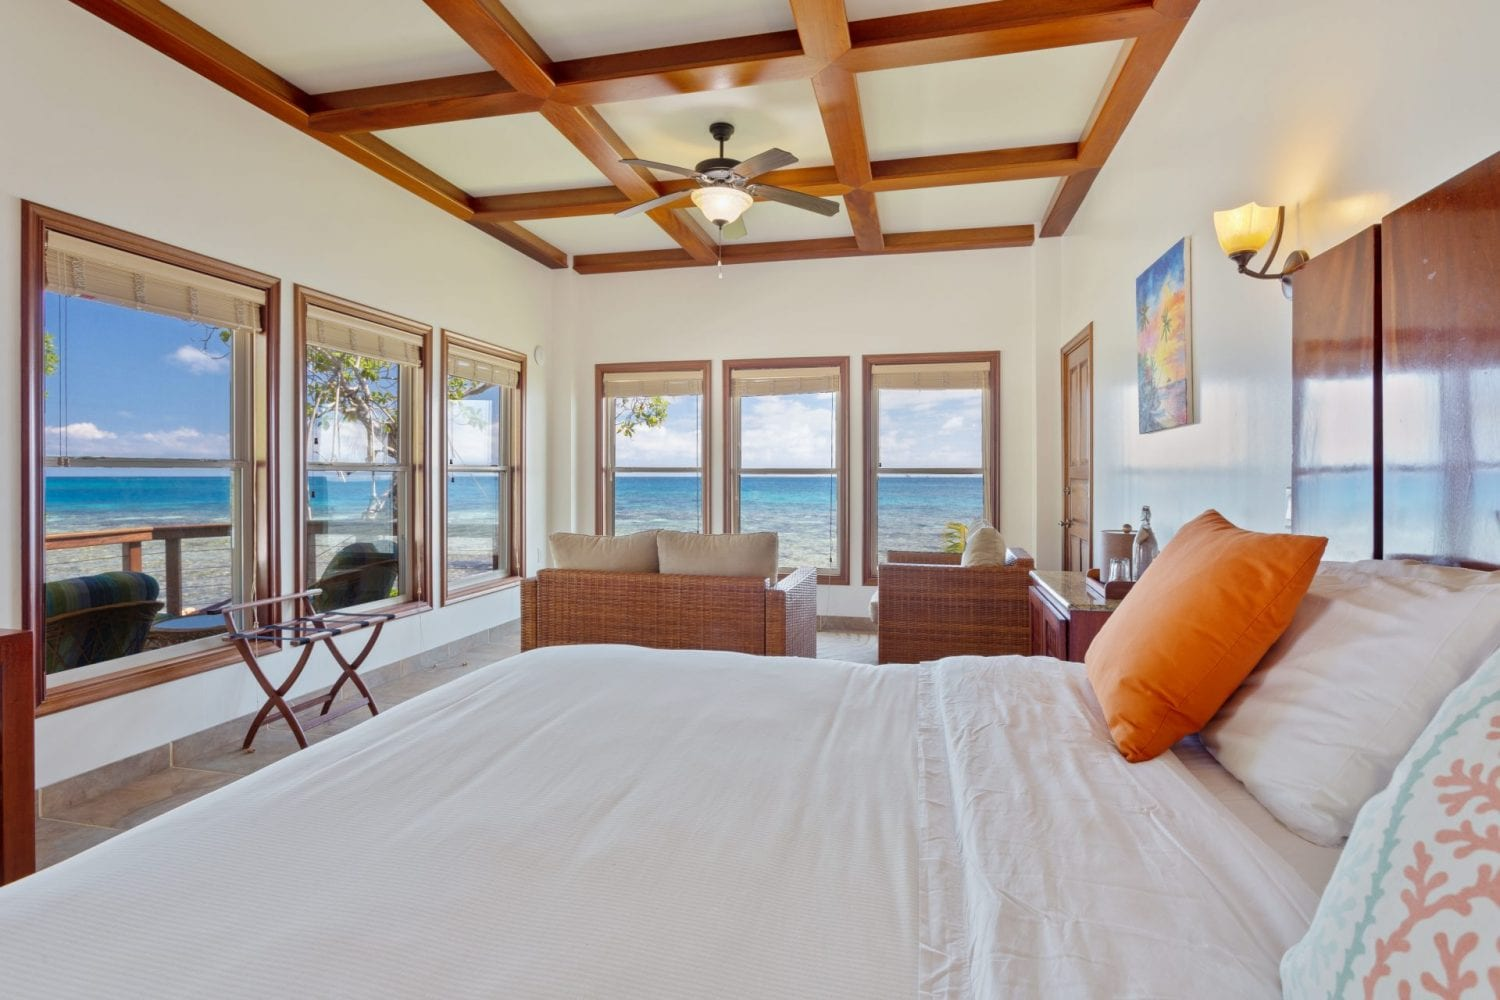 cabana ocean view Ray Caye belize bed